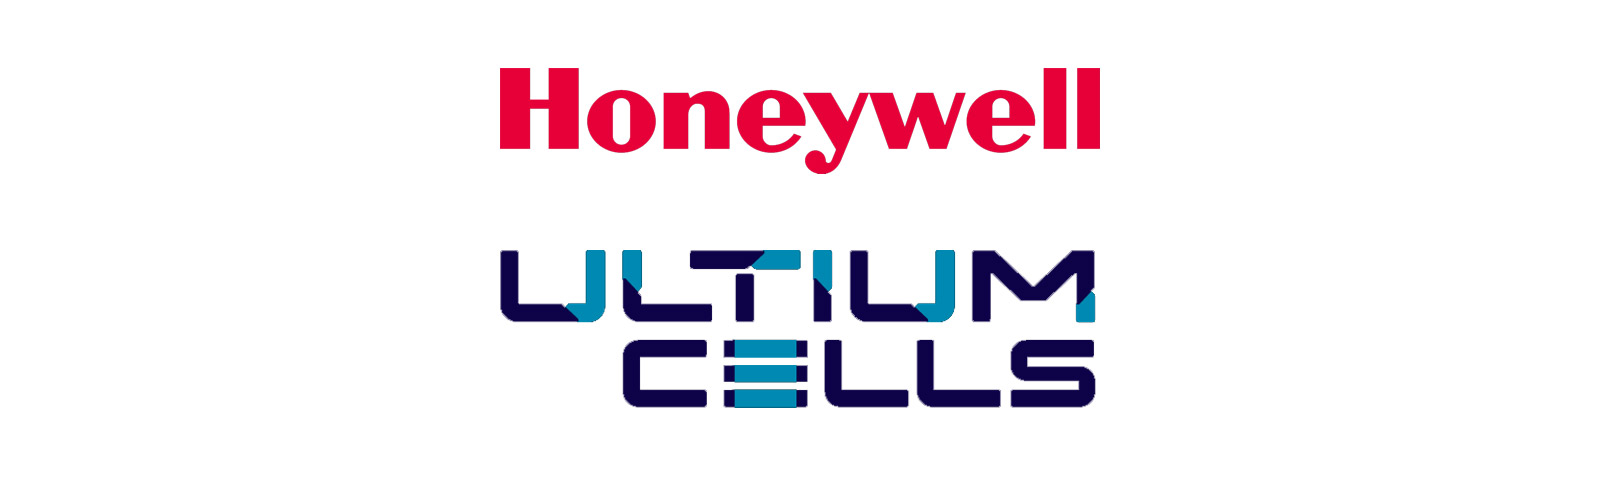 Honeywell is chosen by Ultium Cells to ensure the quality of the EV batteries produced in Lordstown